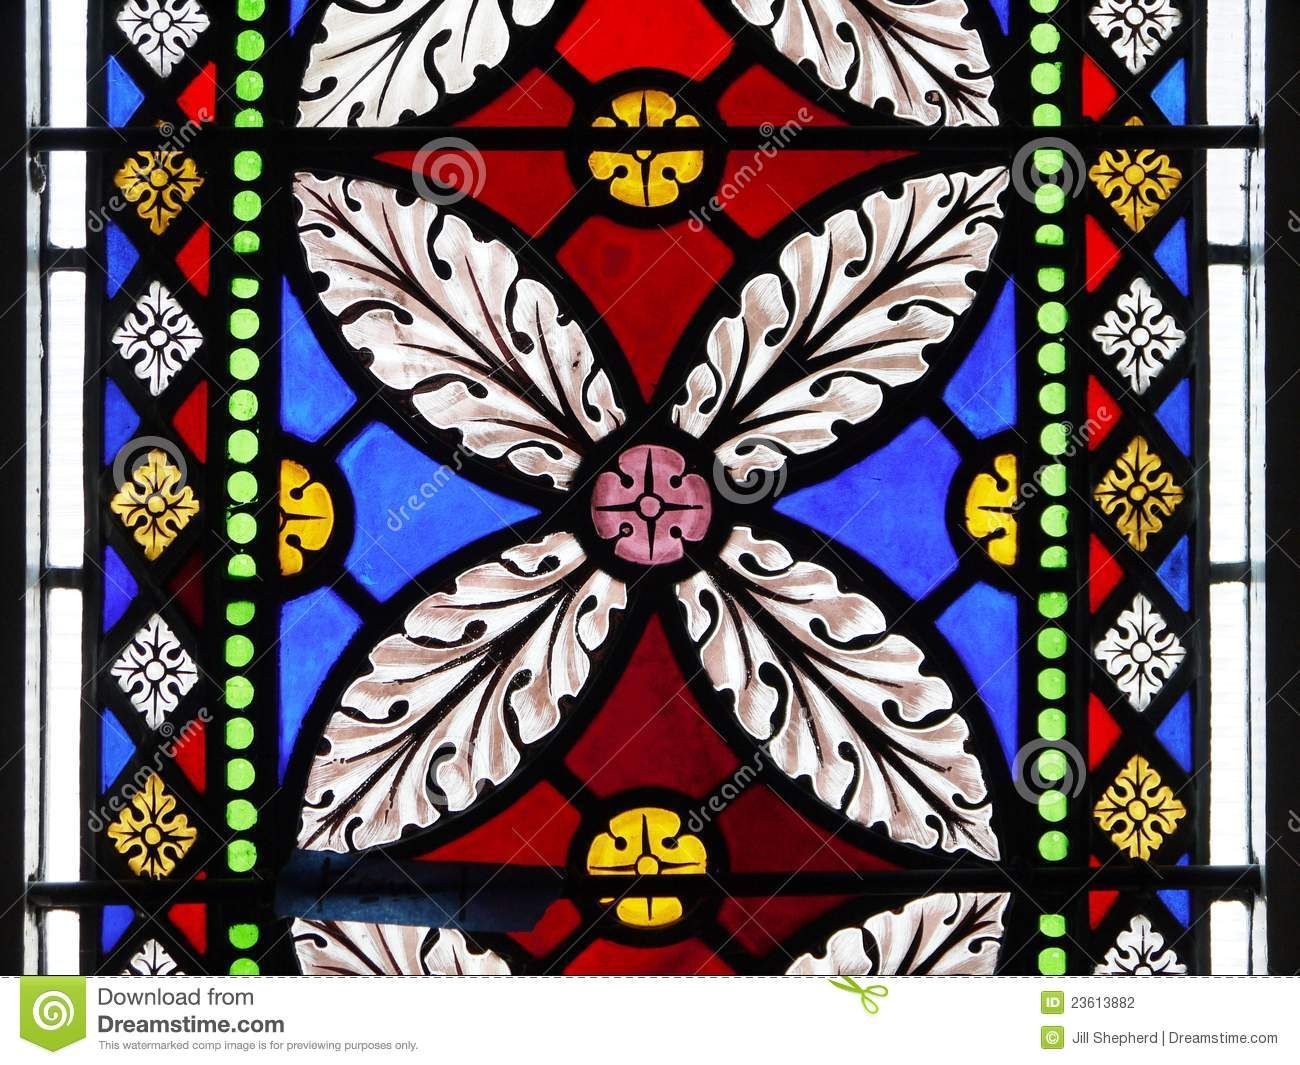 Church stained glass window flower design stock - Stained glass window designs ...